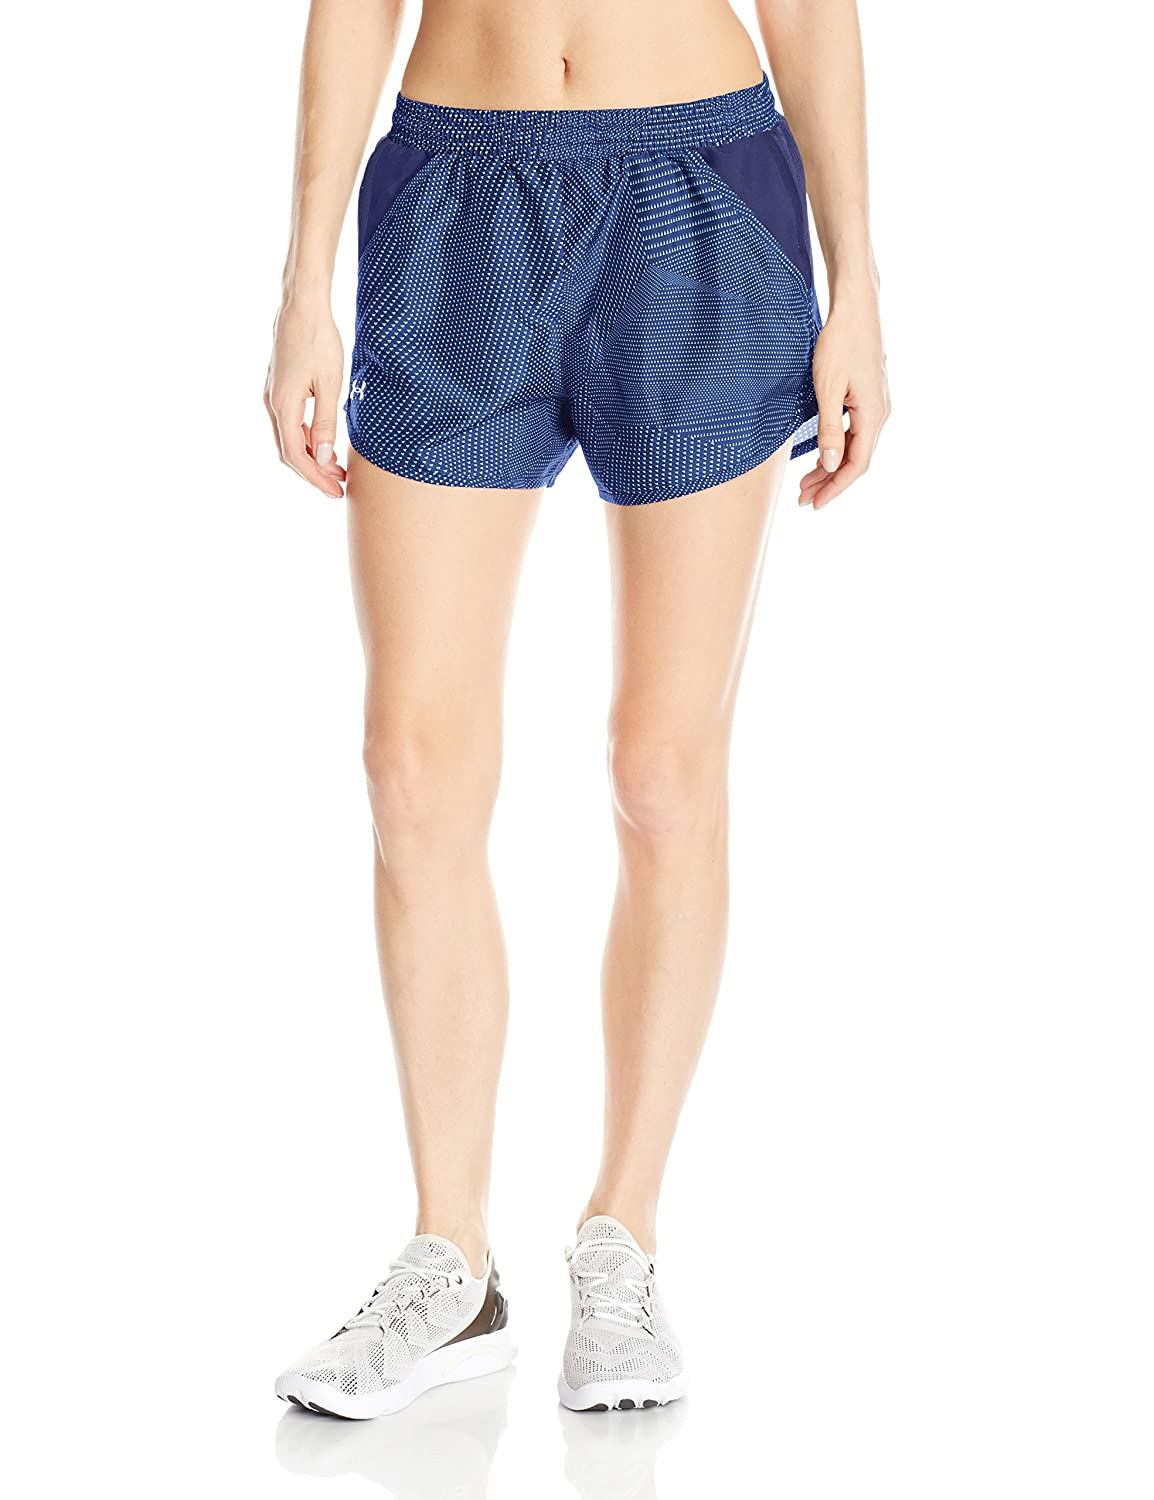 Under Armour Womens Fly-By Perforated Shorts Under Armour Apparel 1297126